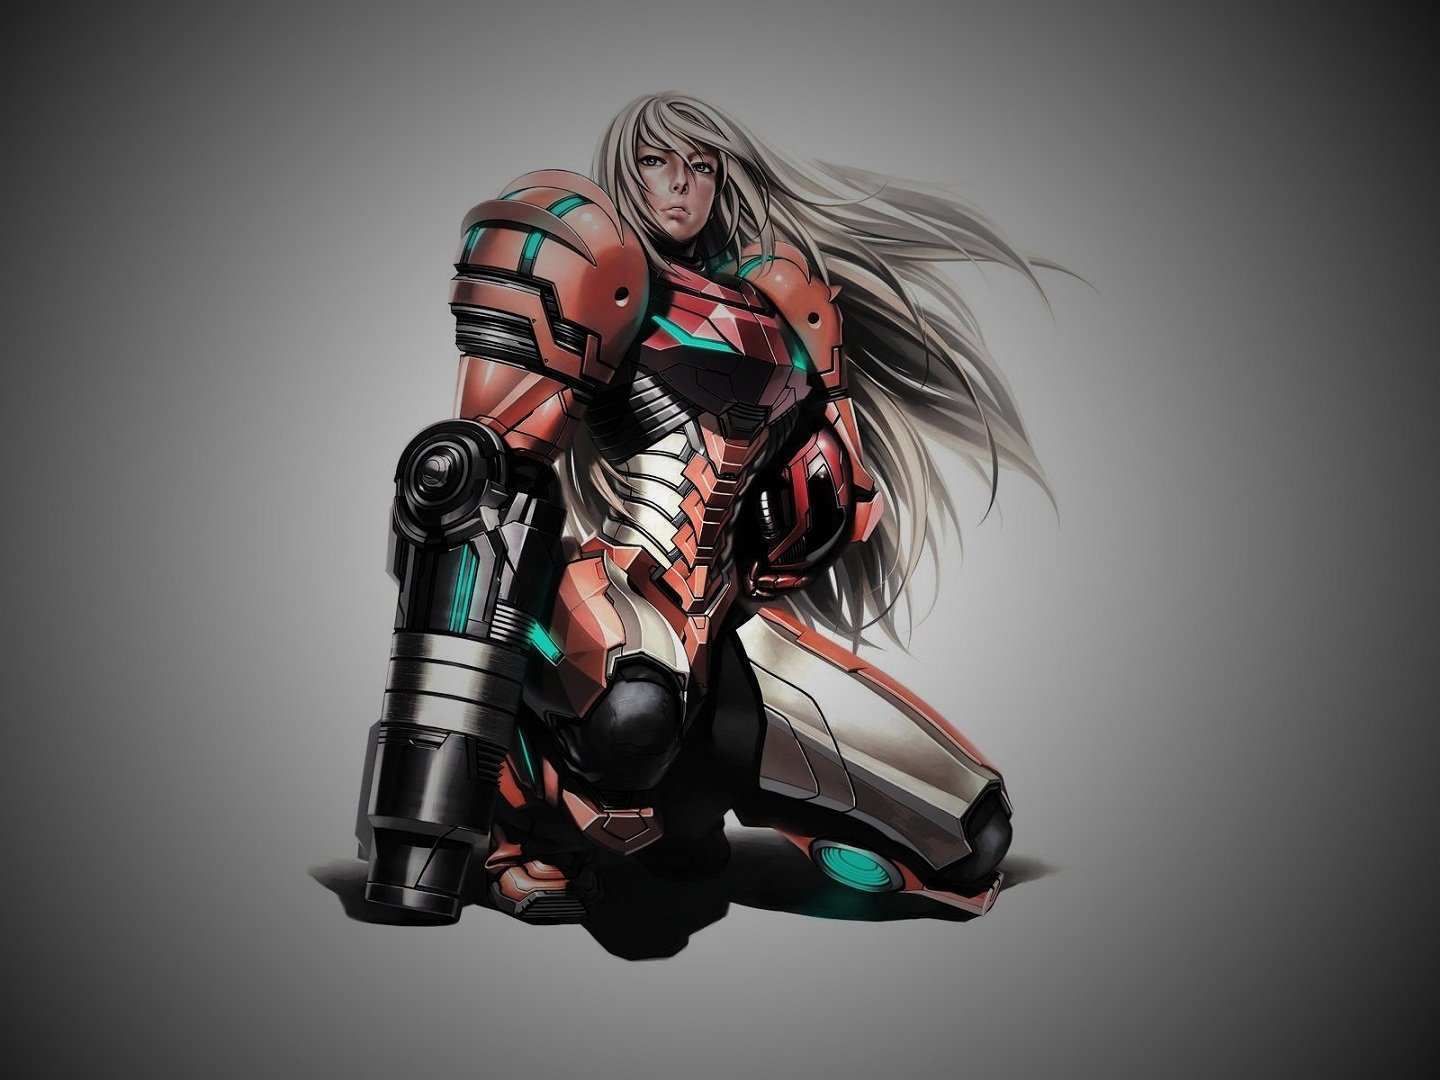 Video Game - Metroid  Metroid Prime Samus Aran Wallpaper